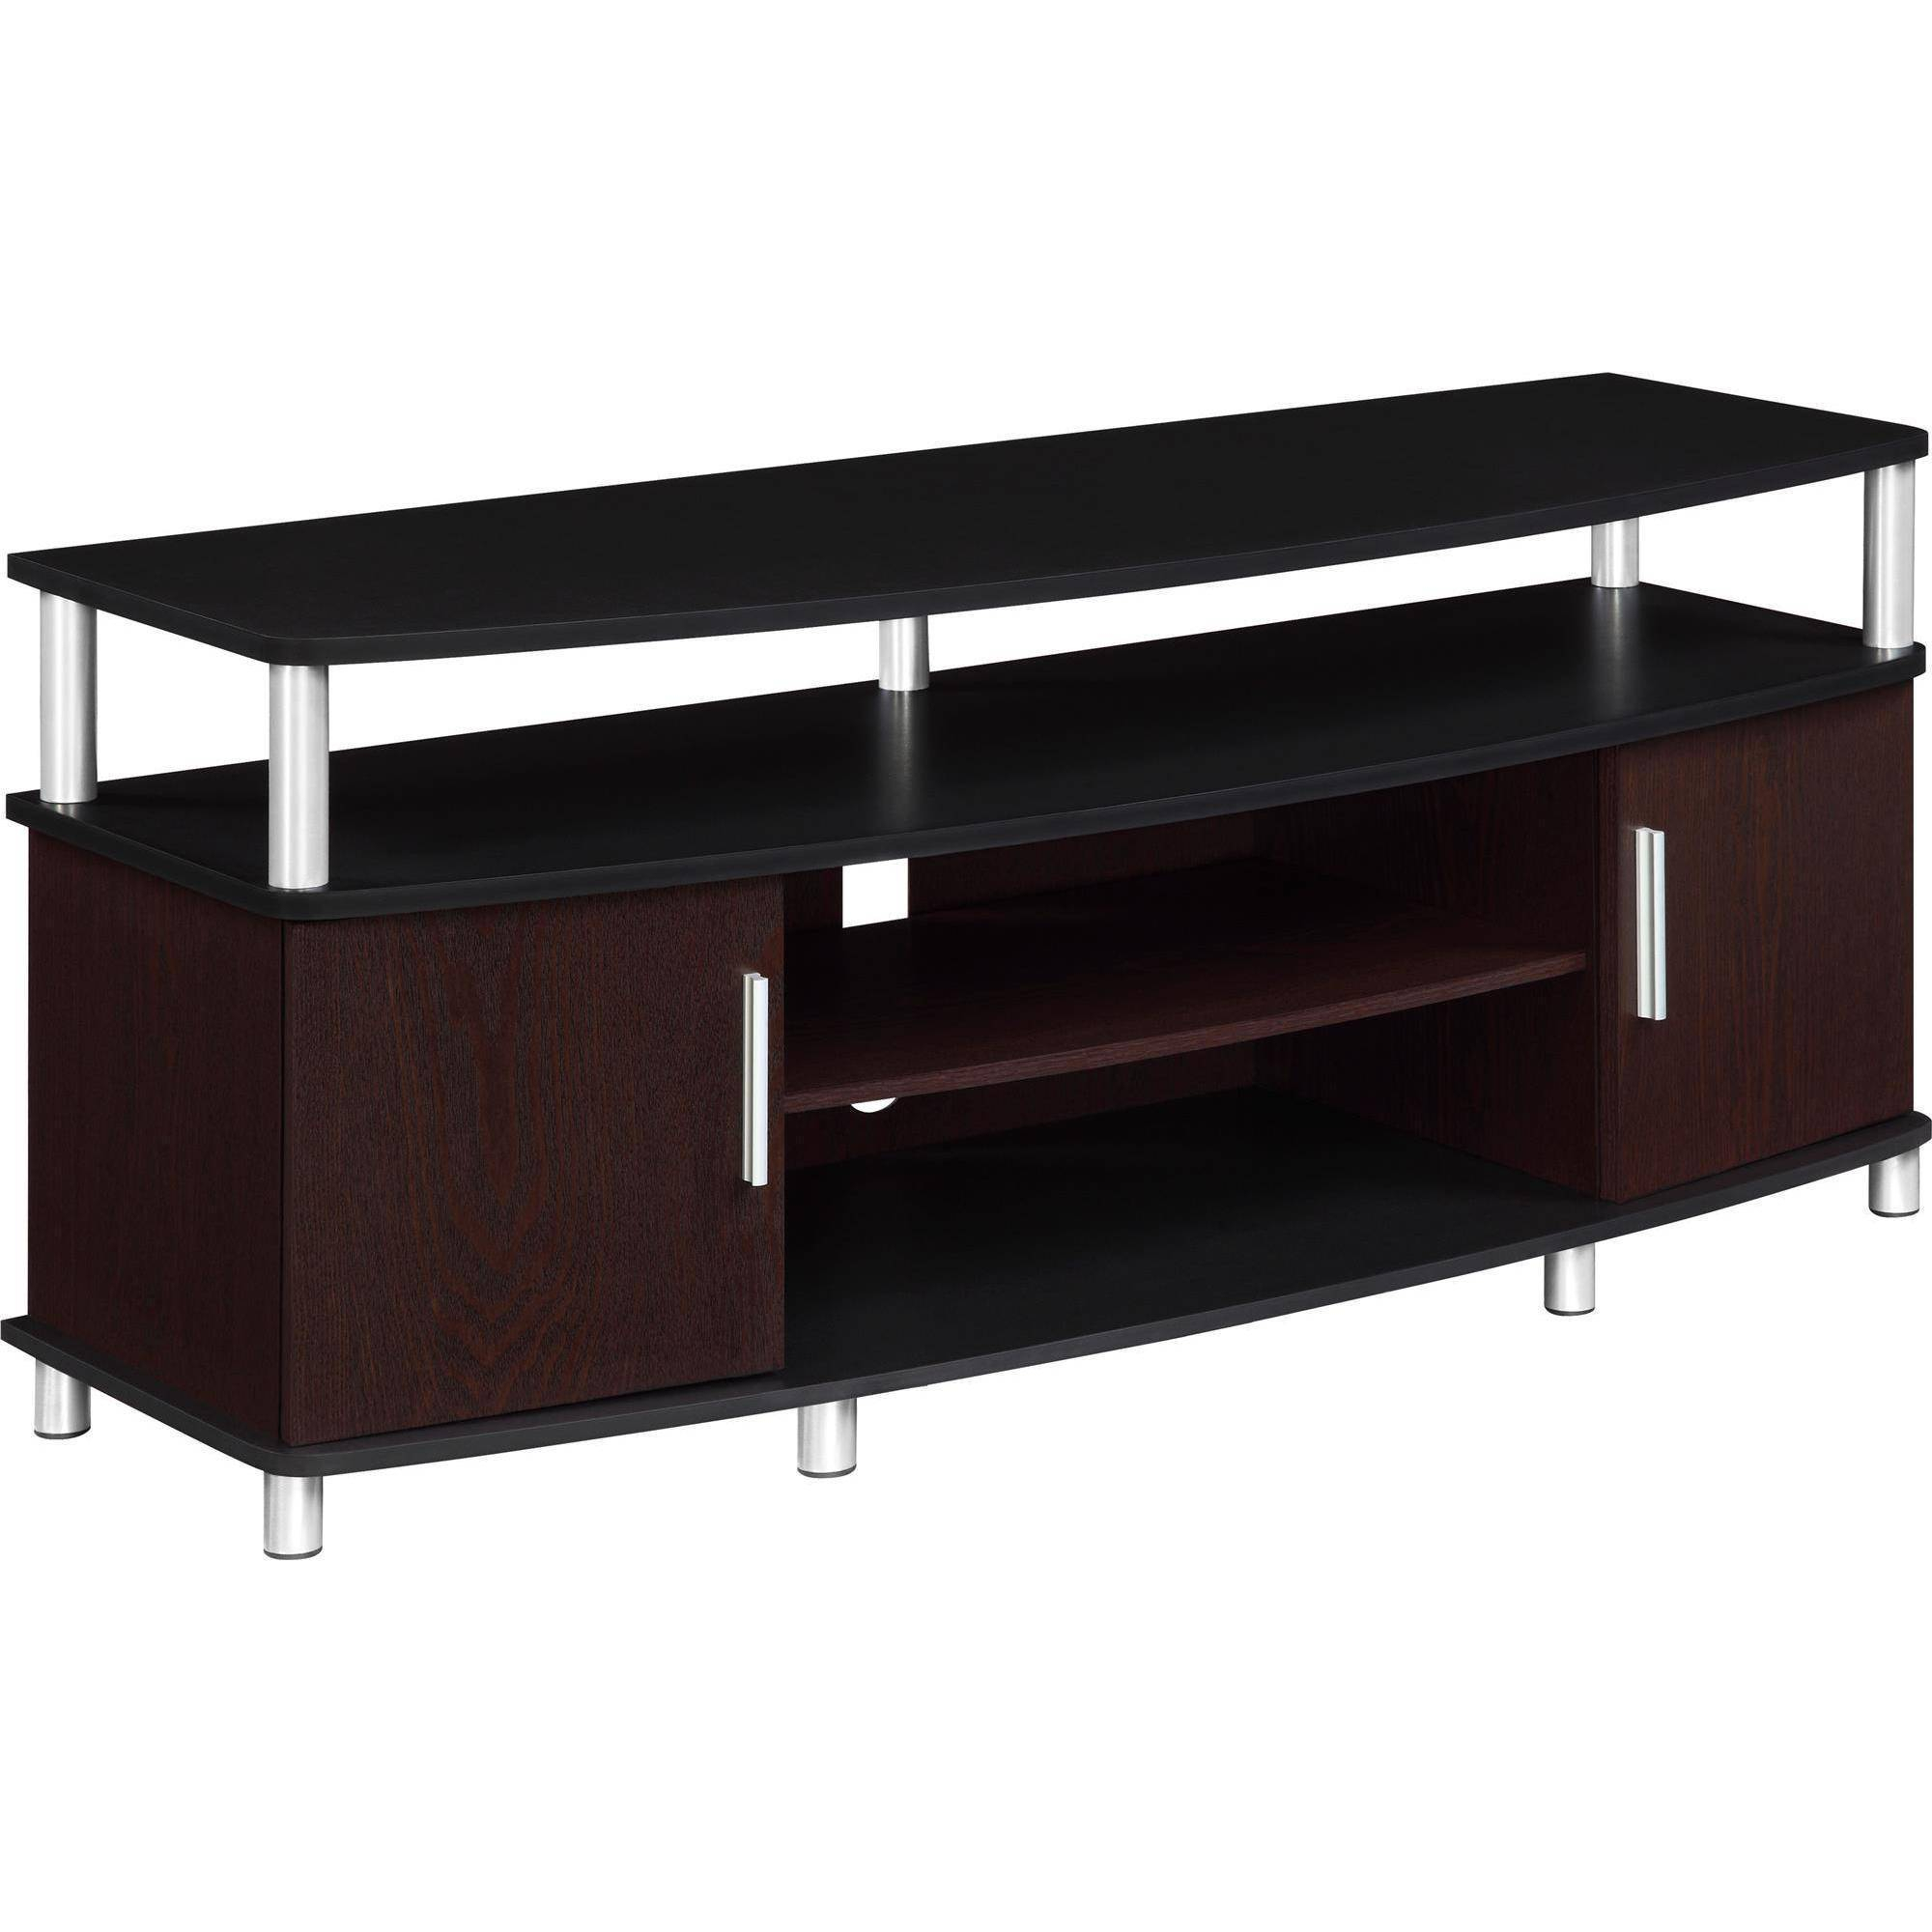 Online Shopping For Appliances ,electronics,fashion,food,drinks With Bale 82 Inch Tv Stands (View 18 of 30)